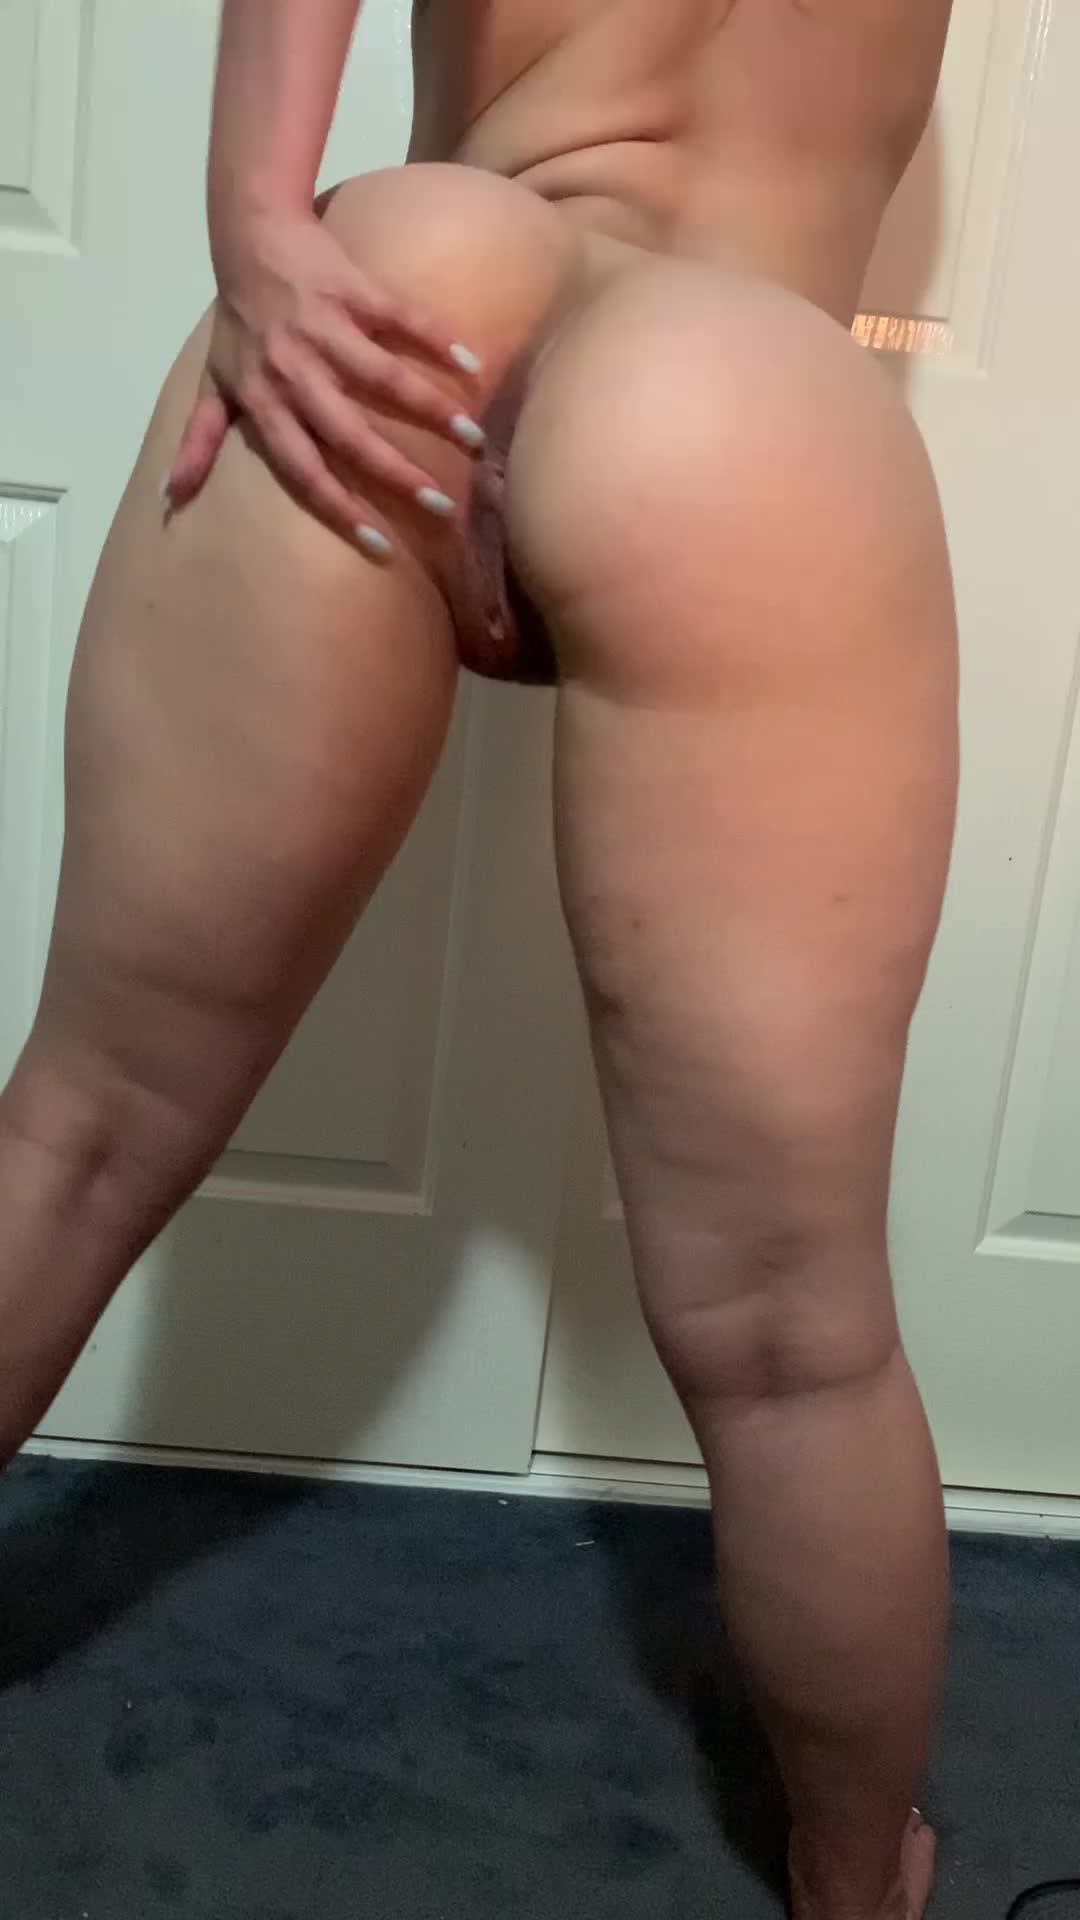 Have you tasted a fat Aussie ass before? 😏 [22]